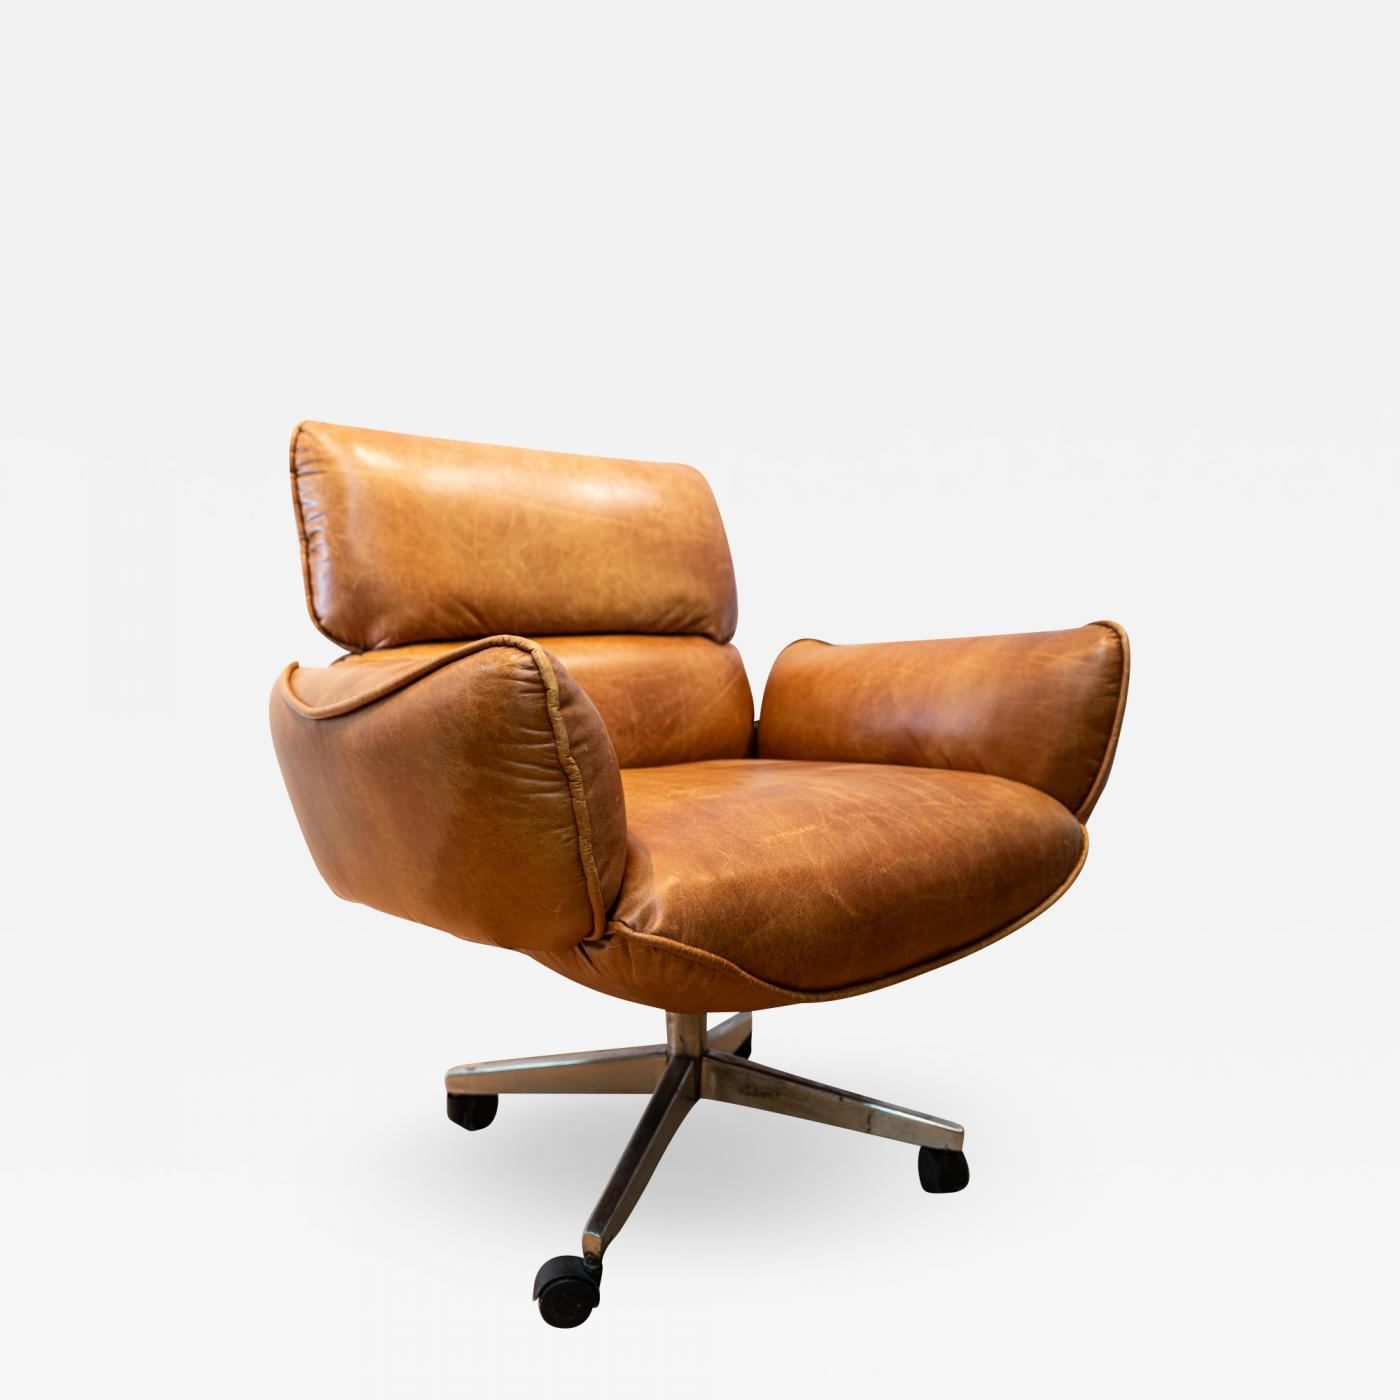 Groovy Otto Zapf Executive Vintage Leather Desk Chair Designed By Otto Zapf Gamerscity Chair Design For Home Gamerscityorg